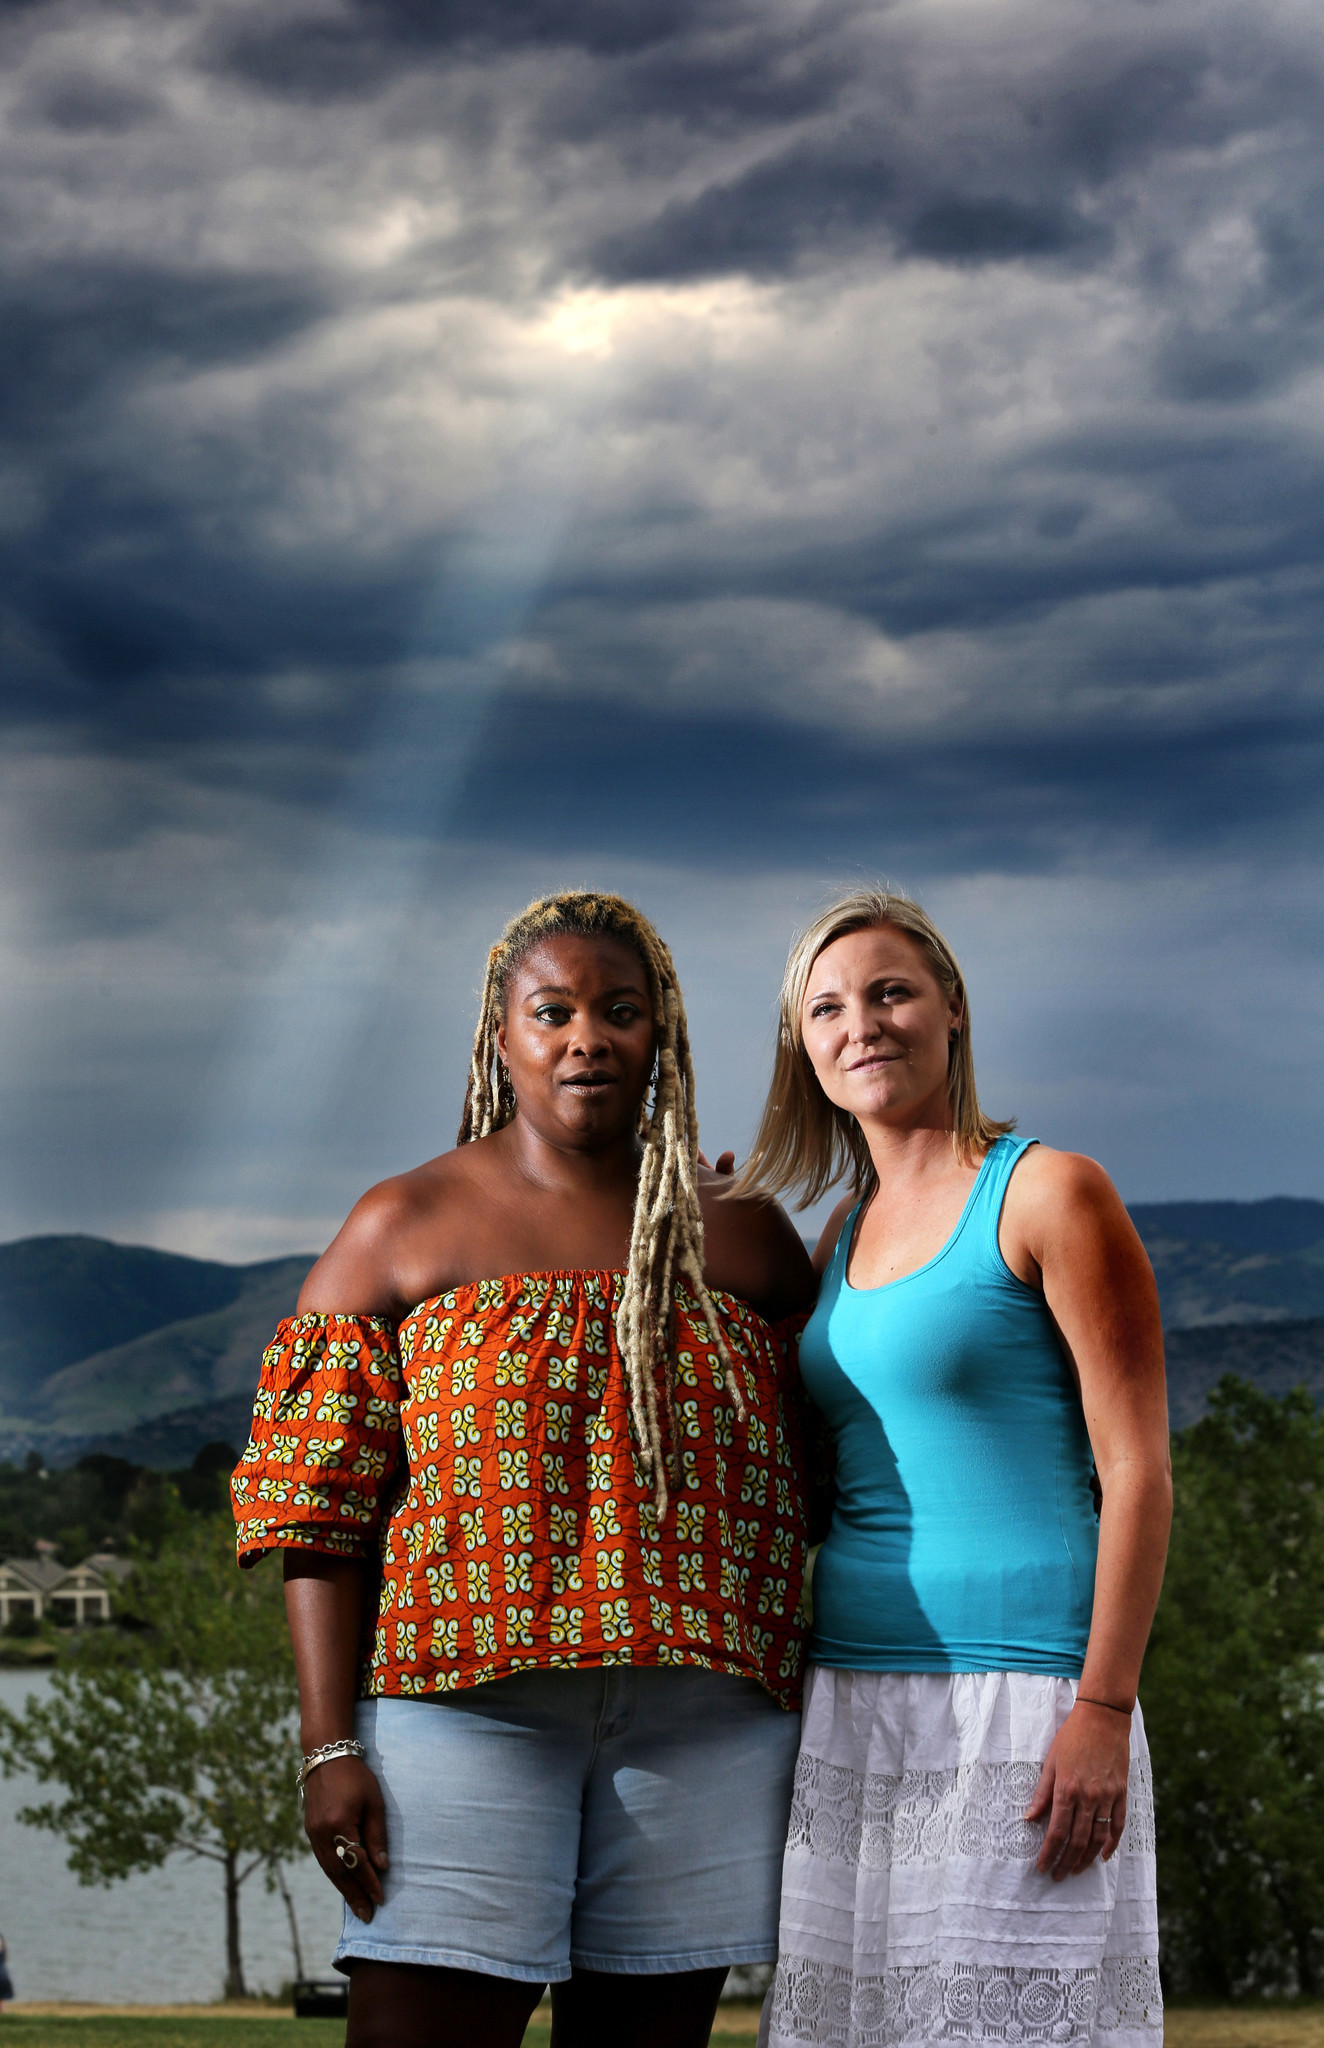 Columbine High School shooting survivor Heather Egeland, right, and Sherrie Lawson, a survivor of the 2013 Washington Navy Shipyard shooting, talk about their recovery experiences.